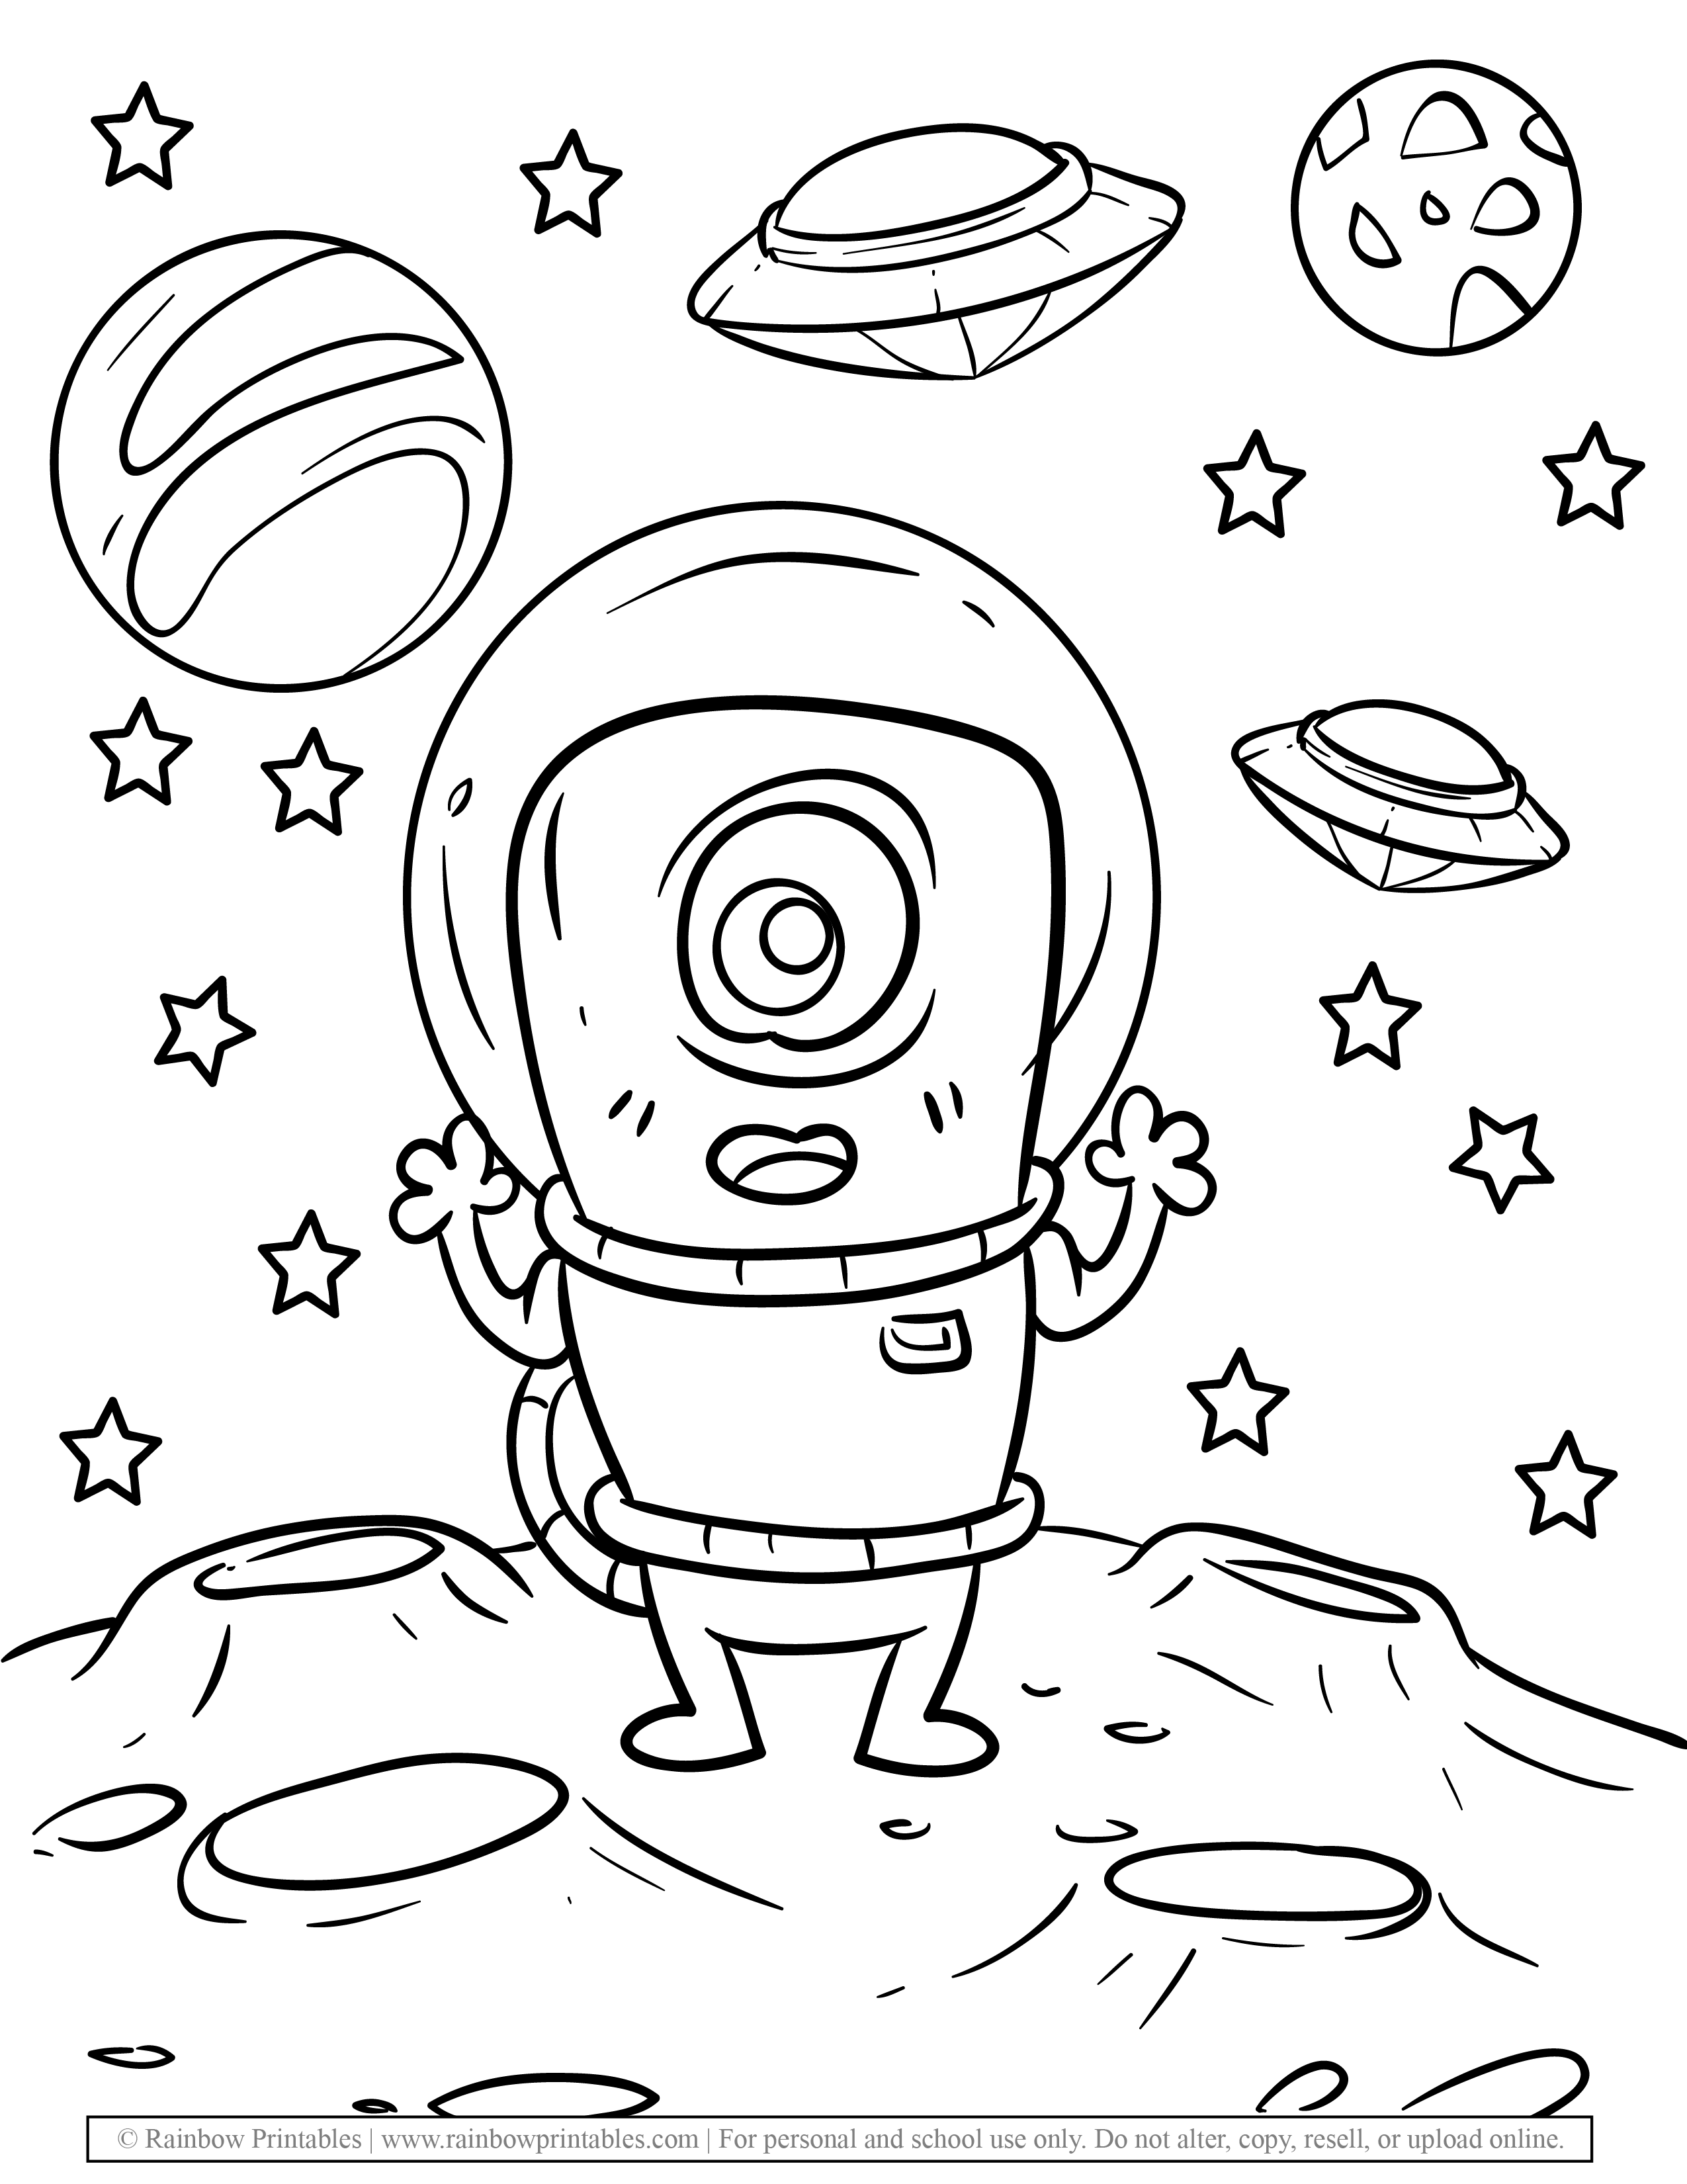 Cute Alien Astronaut Space UFO Smiling Dark Night Coloring Pages for Kids